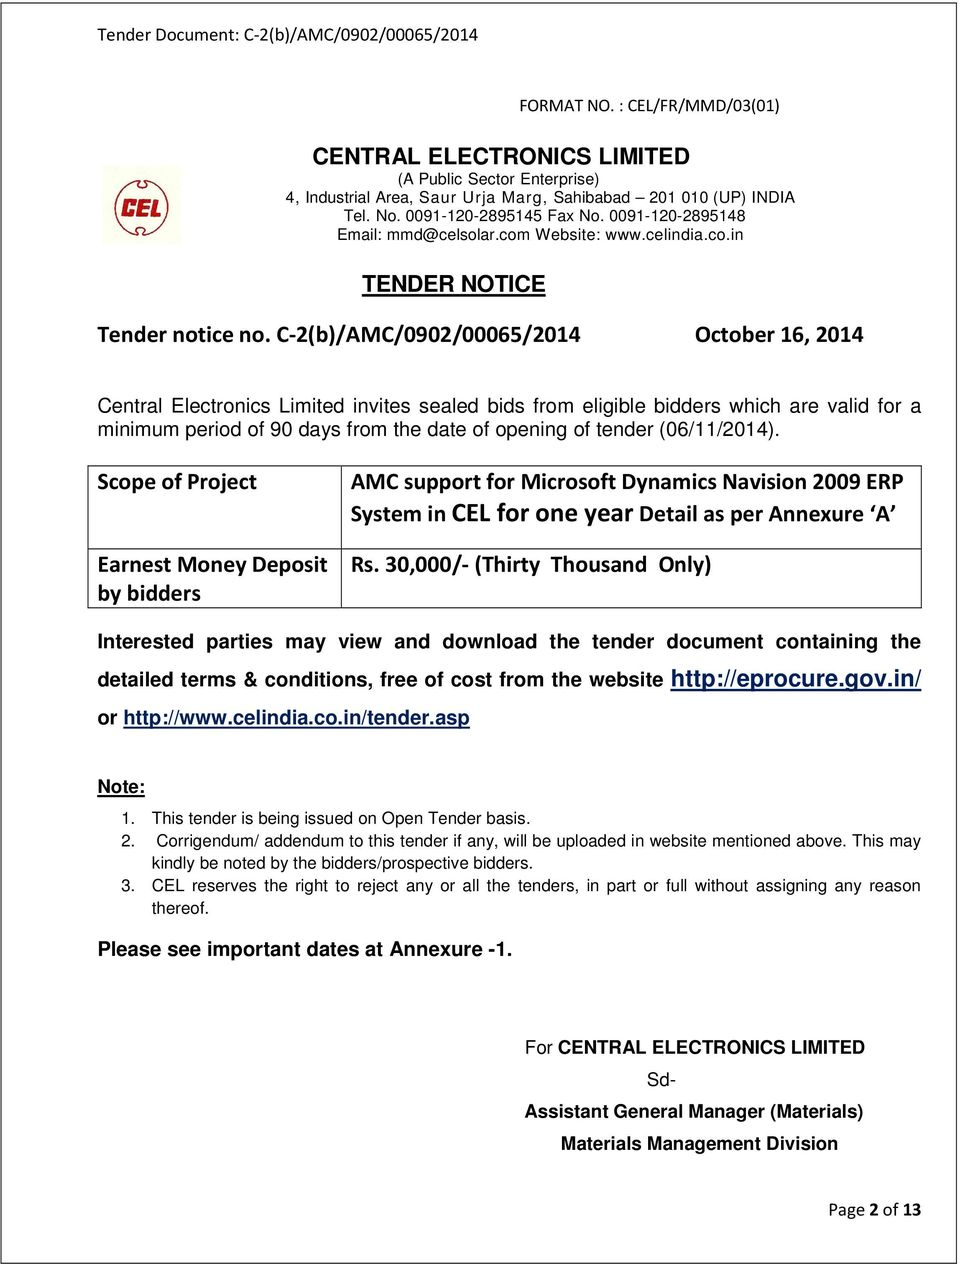 C-2(b)/AMC/0902/00065/2014 October 16, 2014 Central Electronics Limited invites sealed bids from eligible bidders which are valid for a minimum period of 90 days from the date of opening of tender